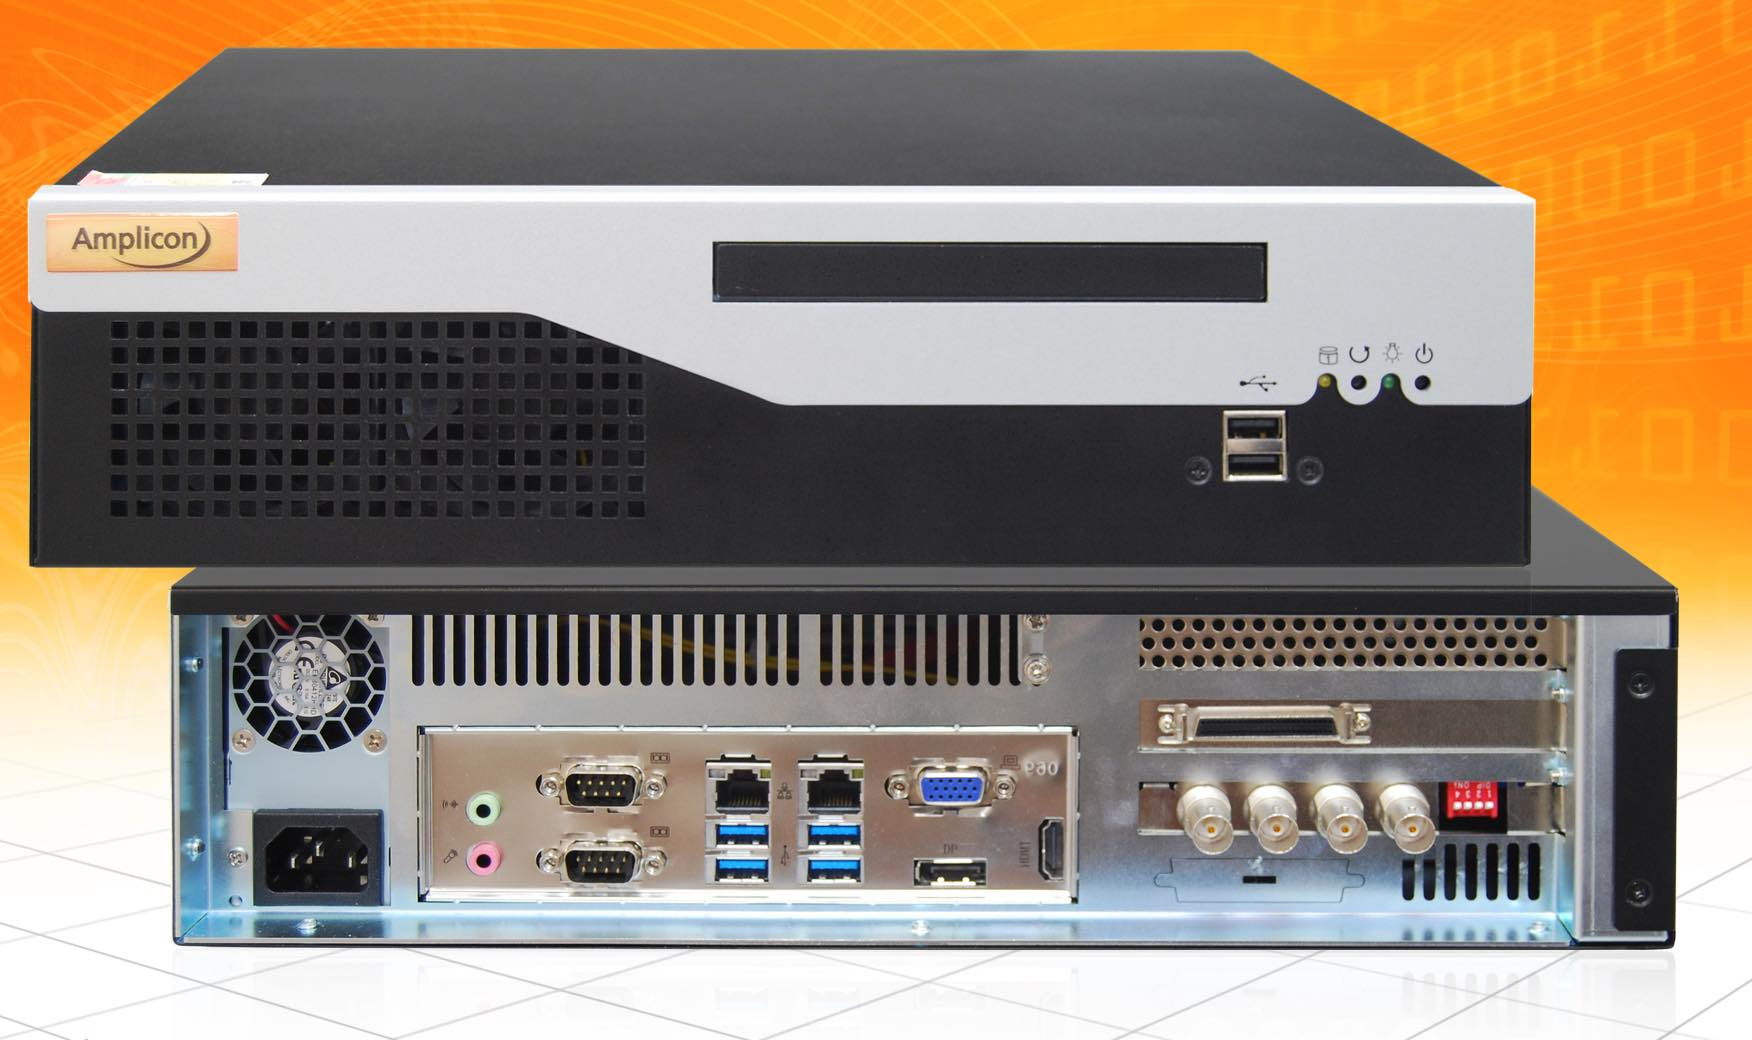 Amplicon's Mini-ITX is first in a line of branded industrial computers